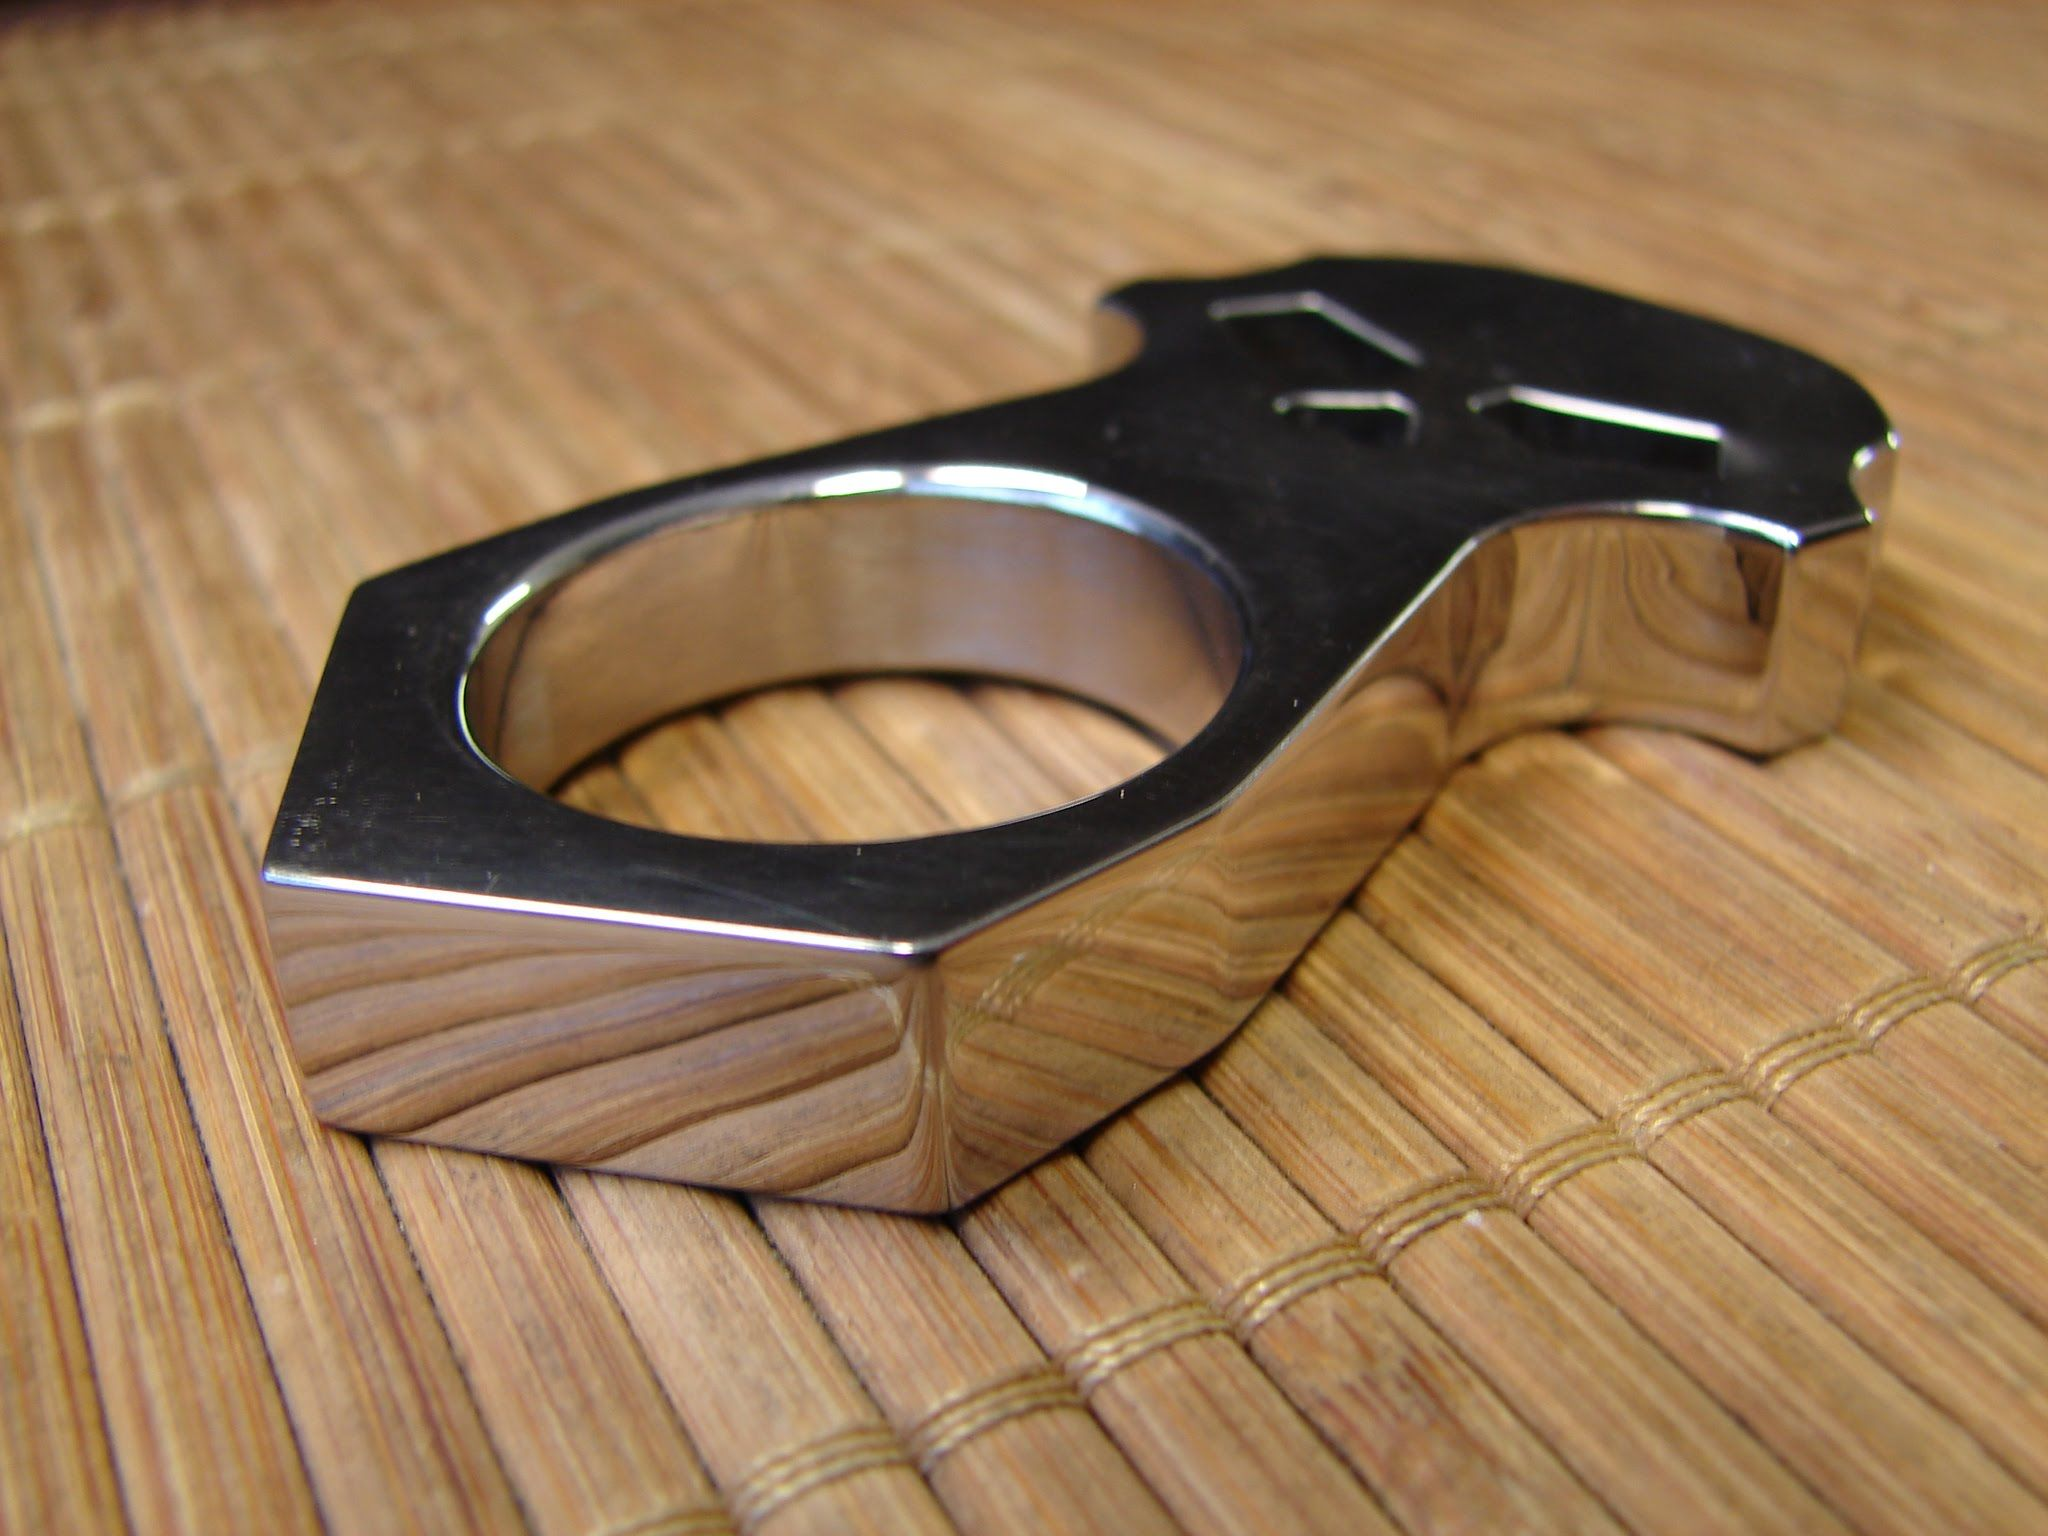 Wooden Knuckles Single Finger Knuckle Duster Google Search Knuckles And Clubs